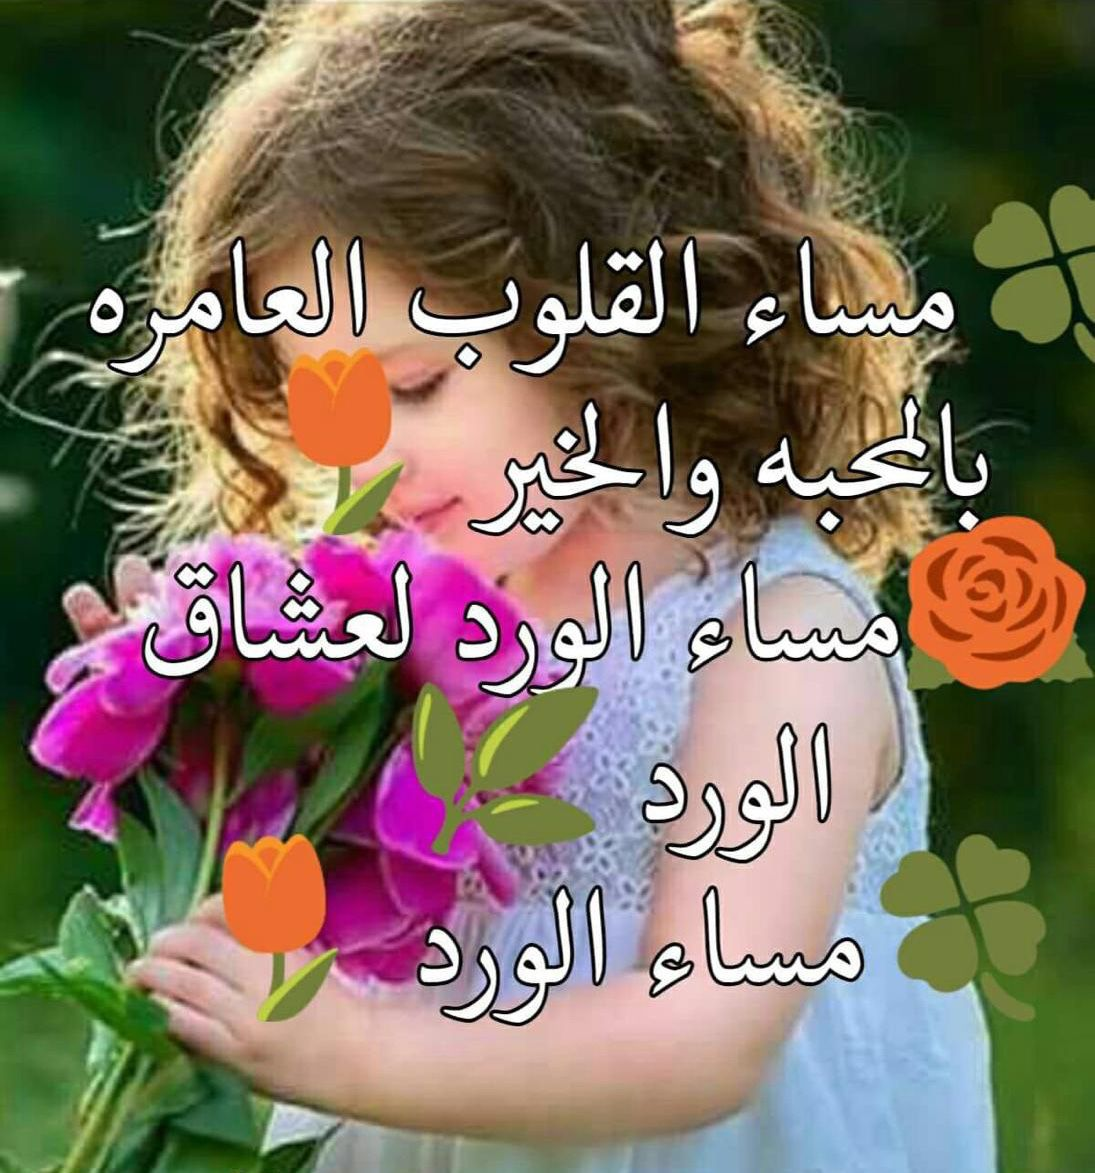 Pin By صورة و كلمة On مساء الخير Good Evening Morning Pictures Evening Quotes Morning Morning